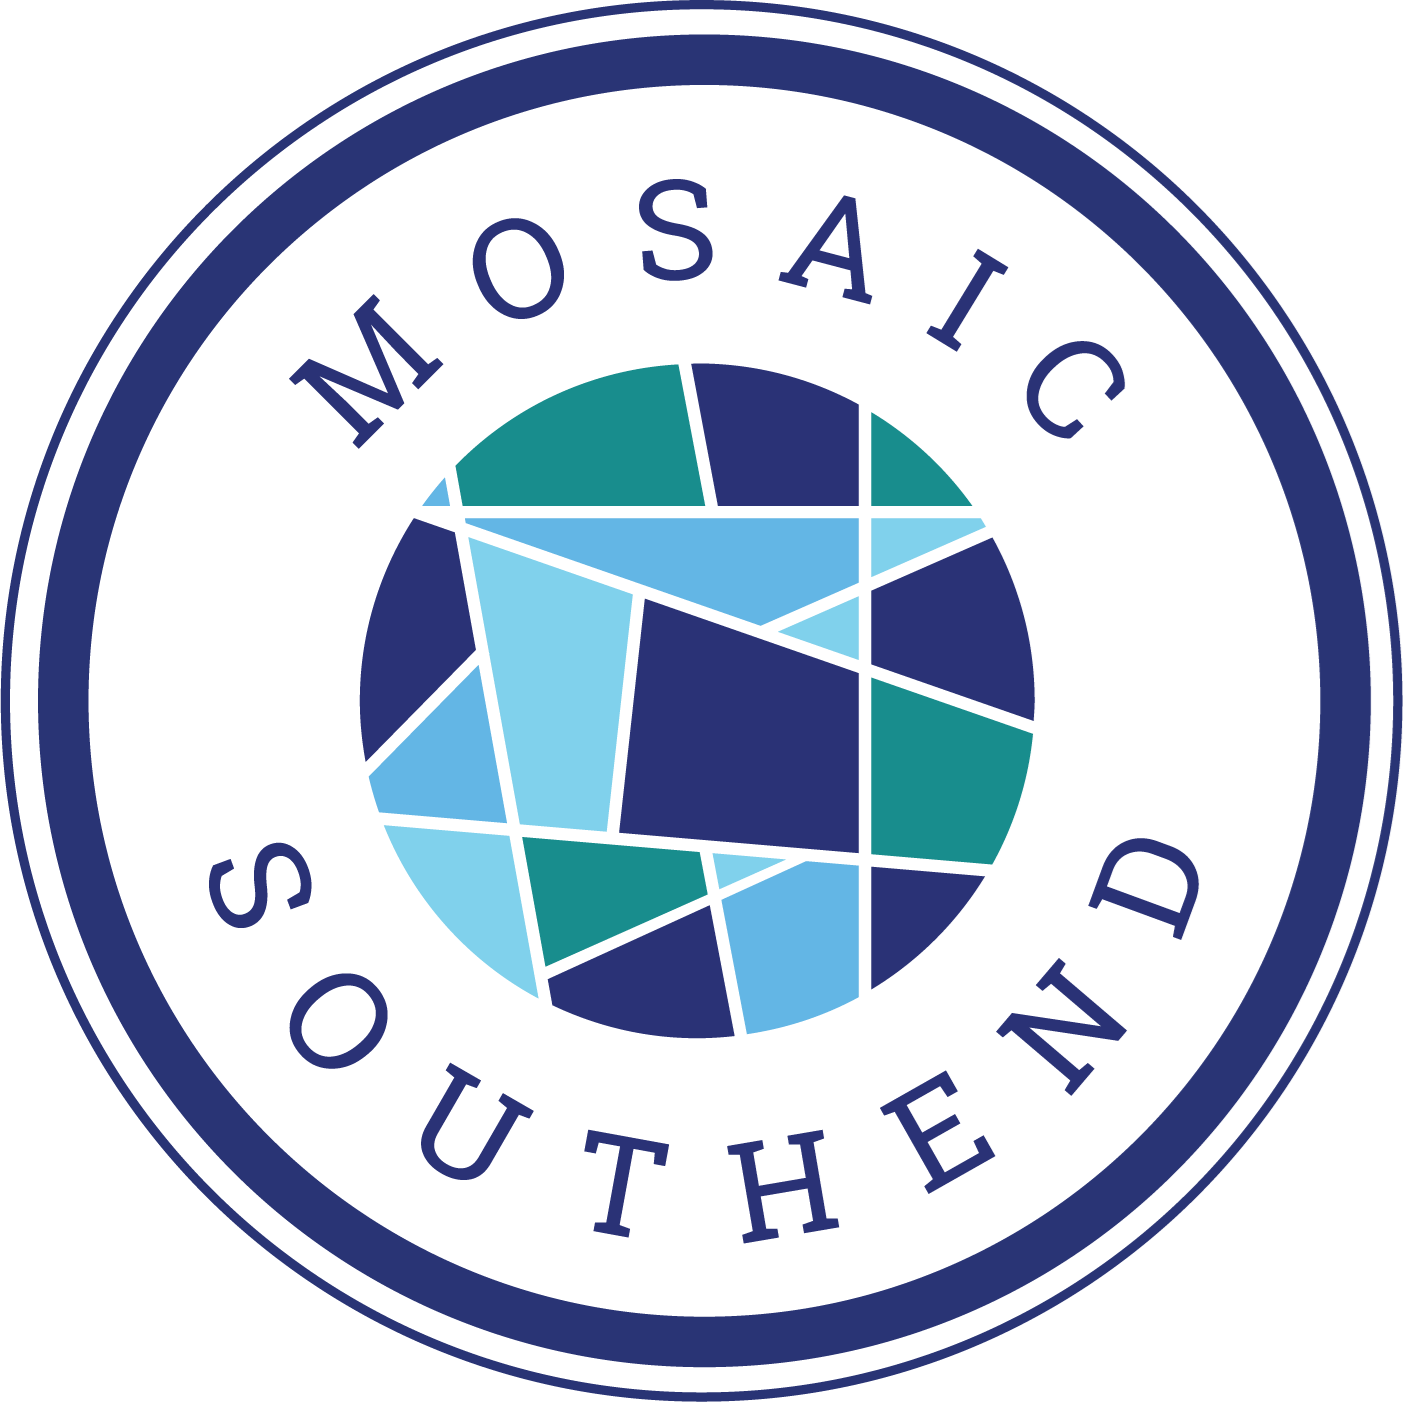 Mosaic South End Circle Graphic at Mosaic South End Apartments in Charlotte, NC